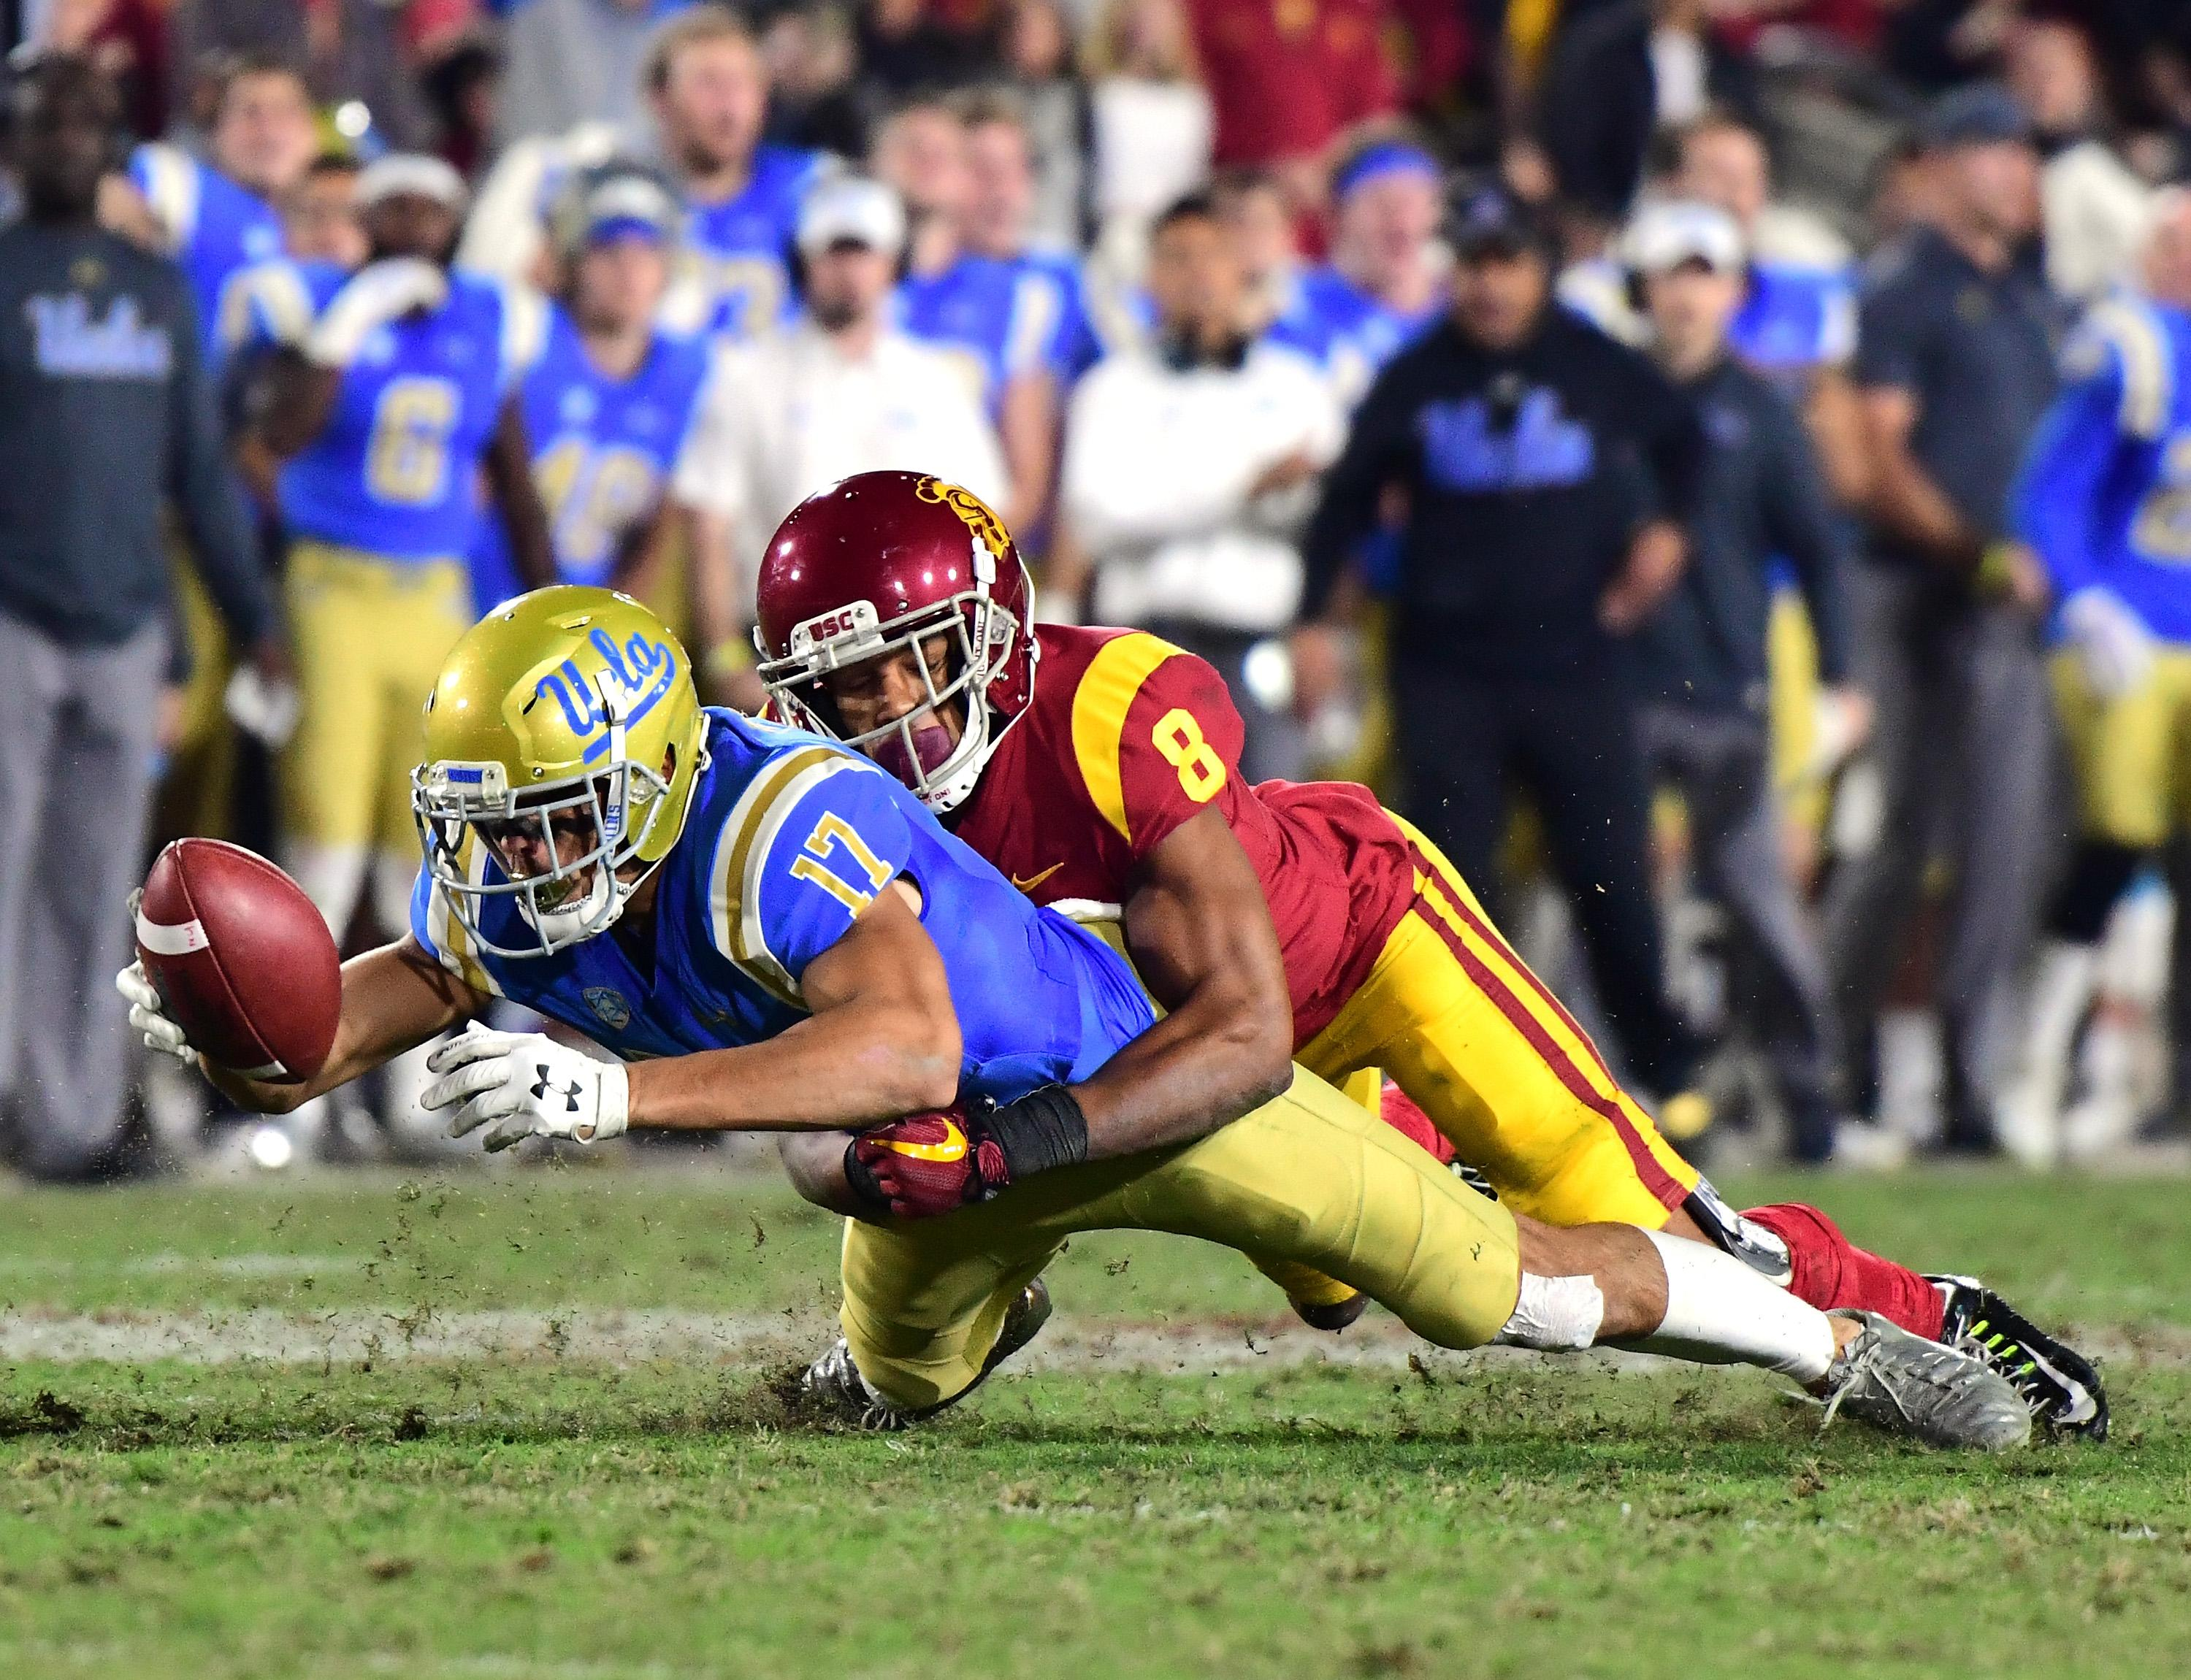 Usc ucla game betting line durability mod 1-3 2-4 betting system